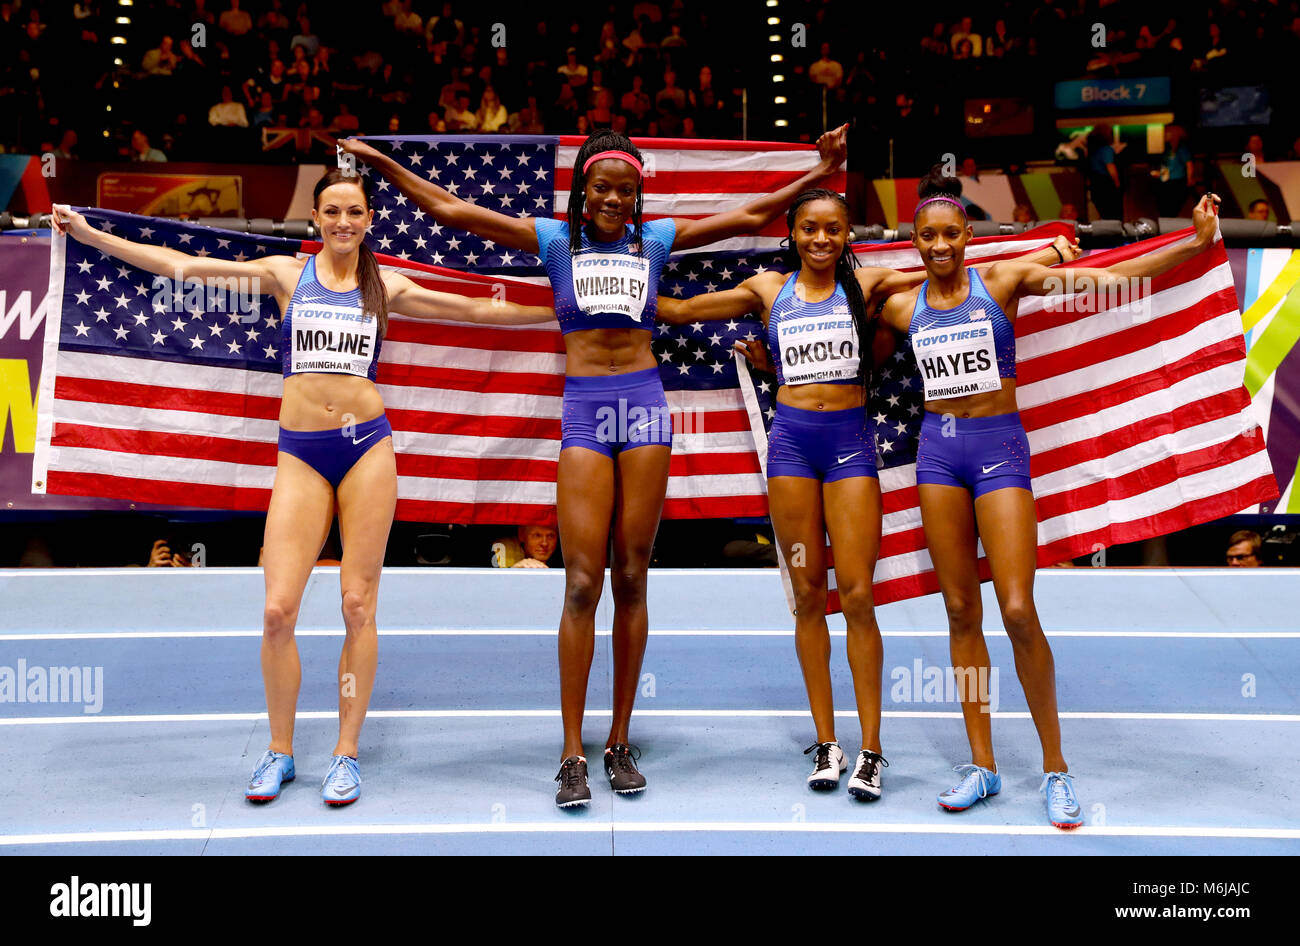 (From left to right) USA's Georganne Moline, Shakima Wimbley, Courtney Okolo and Quanera Hayes celebrate winning - Stock Image